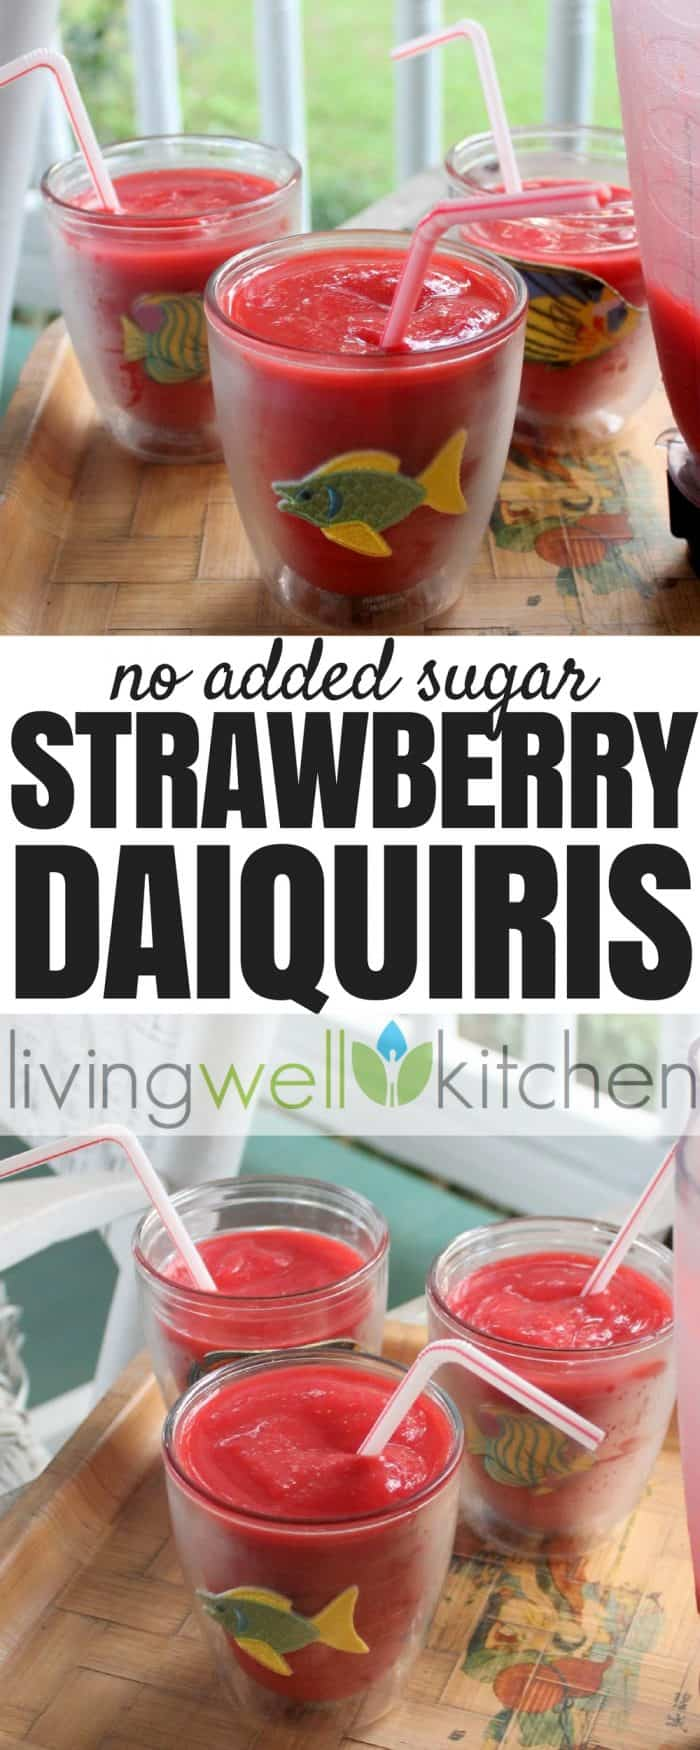 Only four ingredients needed to make these Strawberry Daiquiris from @memeinge guaranteed to satisfy your craving with no added sugar. Dairy free, gluten free, vegan, no sugar added recipe. Great for entertaining!